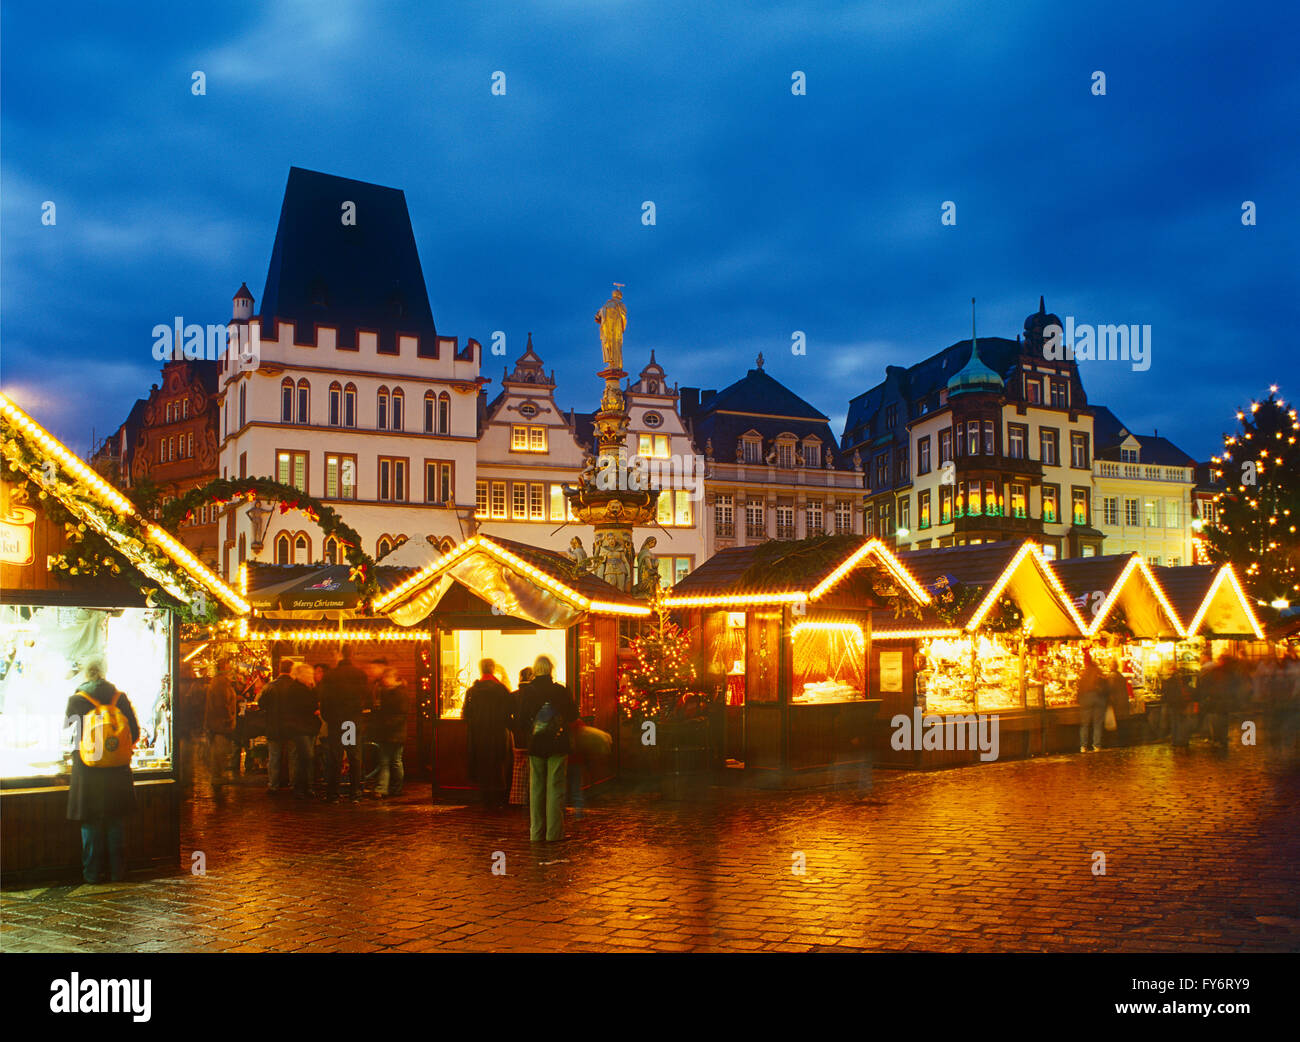 Christmas market in Tier, Market Square, Rhineland Palatinate, Germany - Stock Image